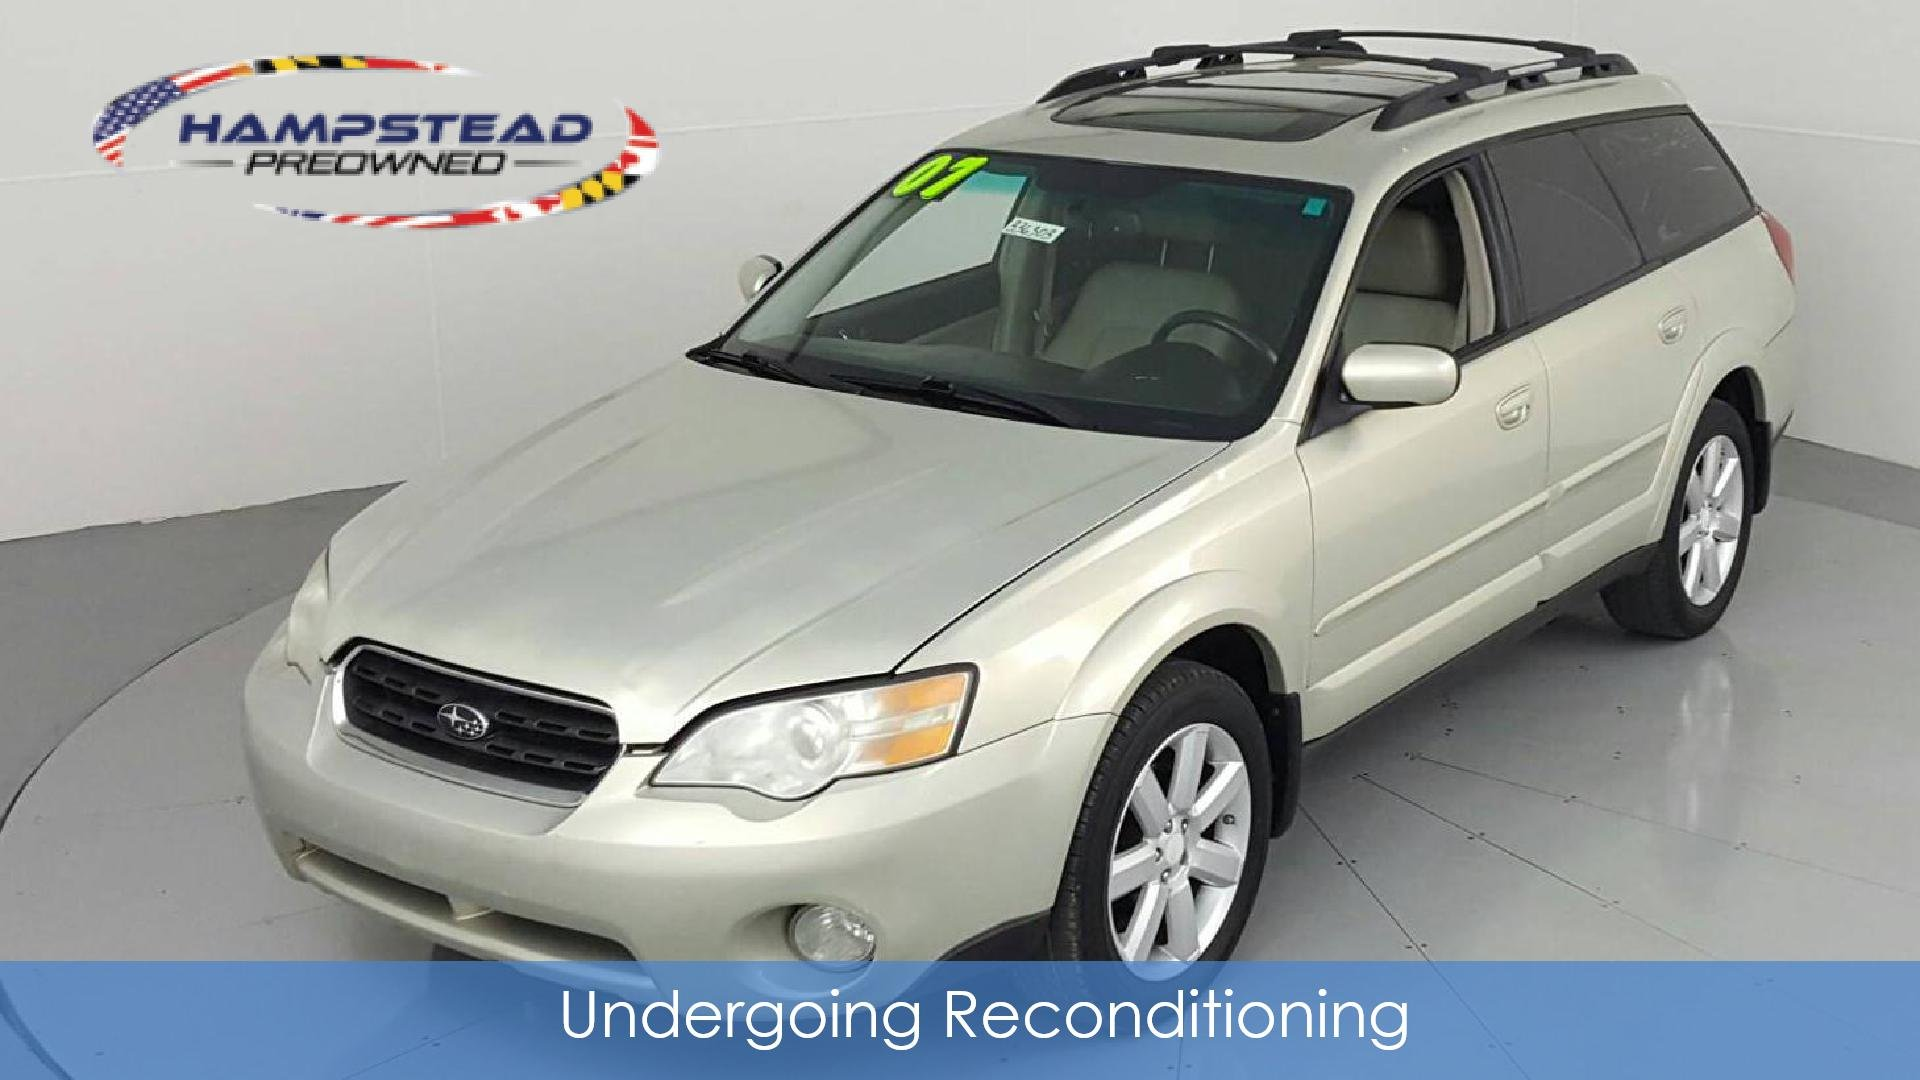 Pre-Owned 2007 SUBARU LEGACY WAGON Ltd